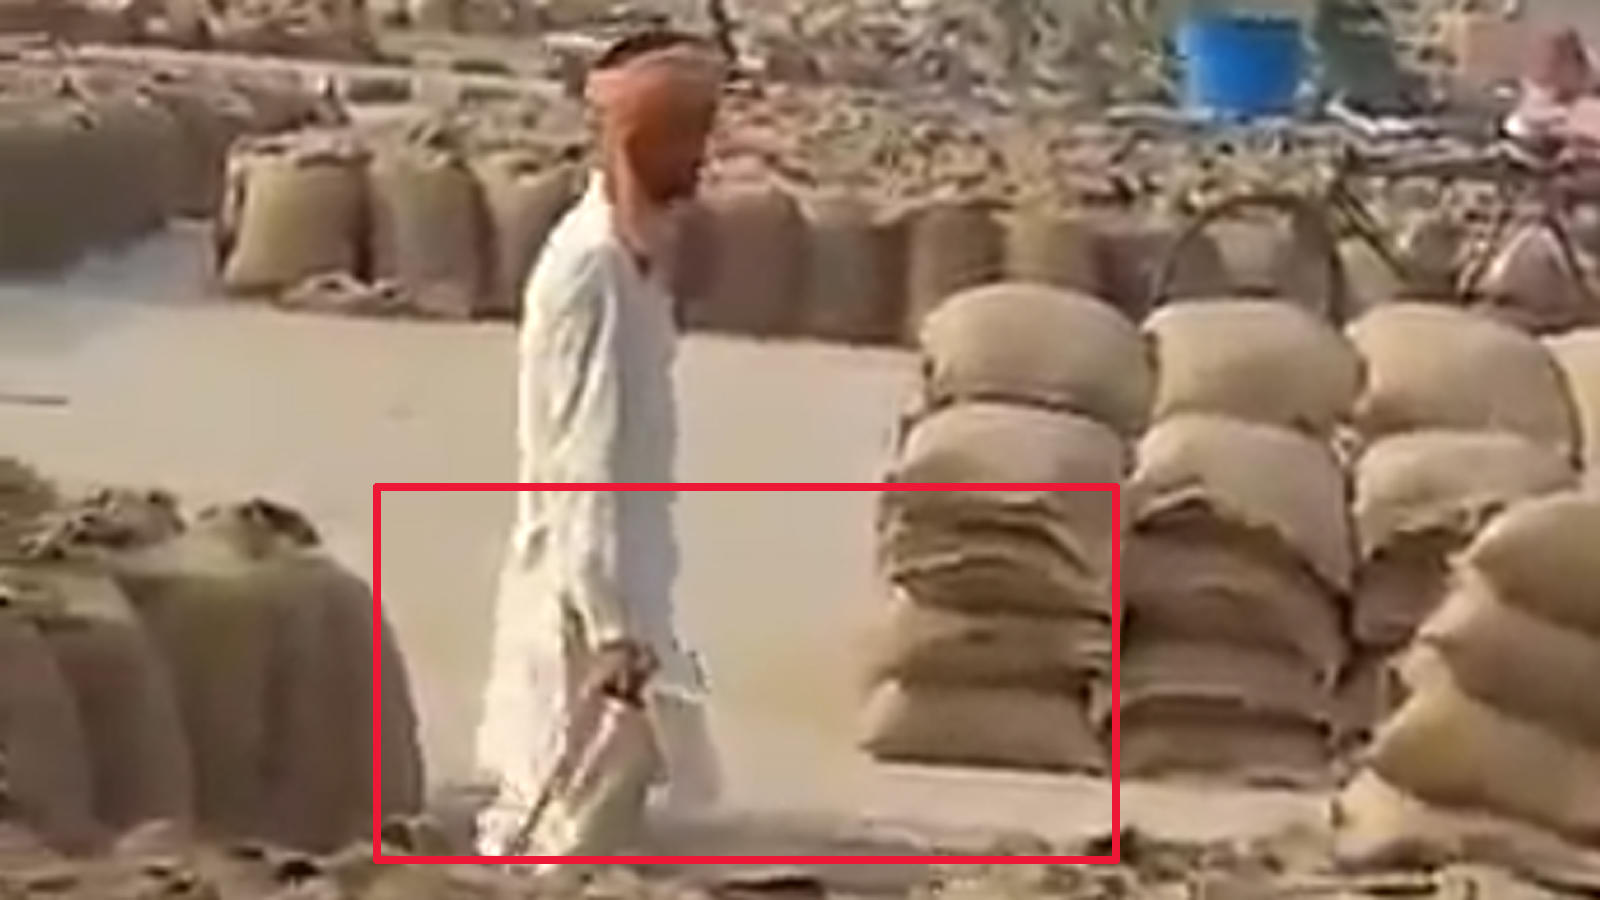 shocking-man-pours-water-on-tons-of-foodgrain-bags-to-increase-weight